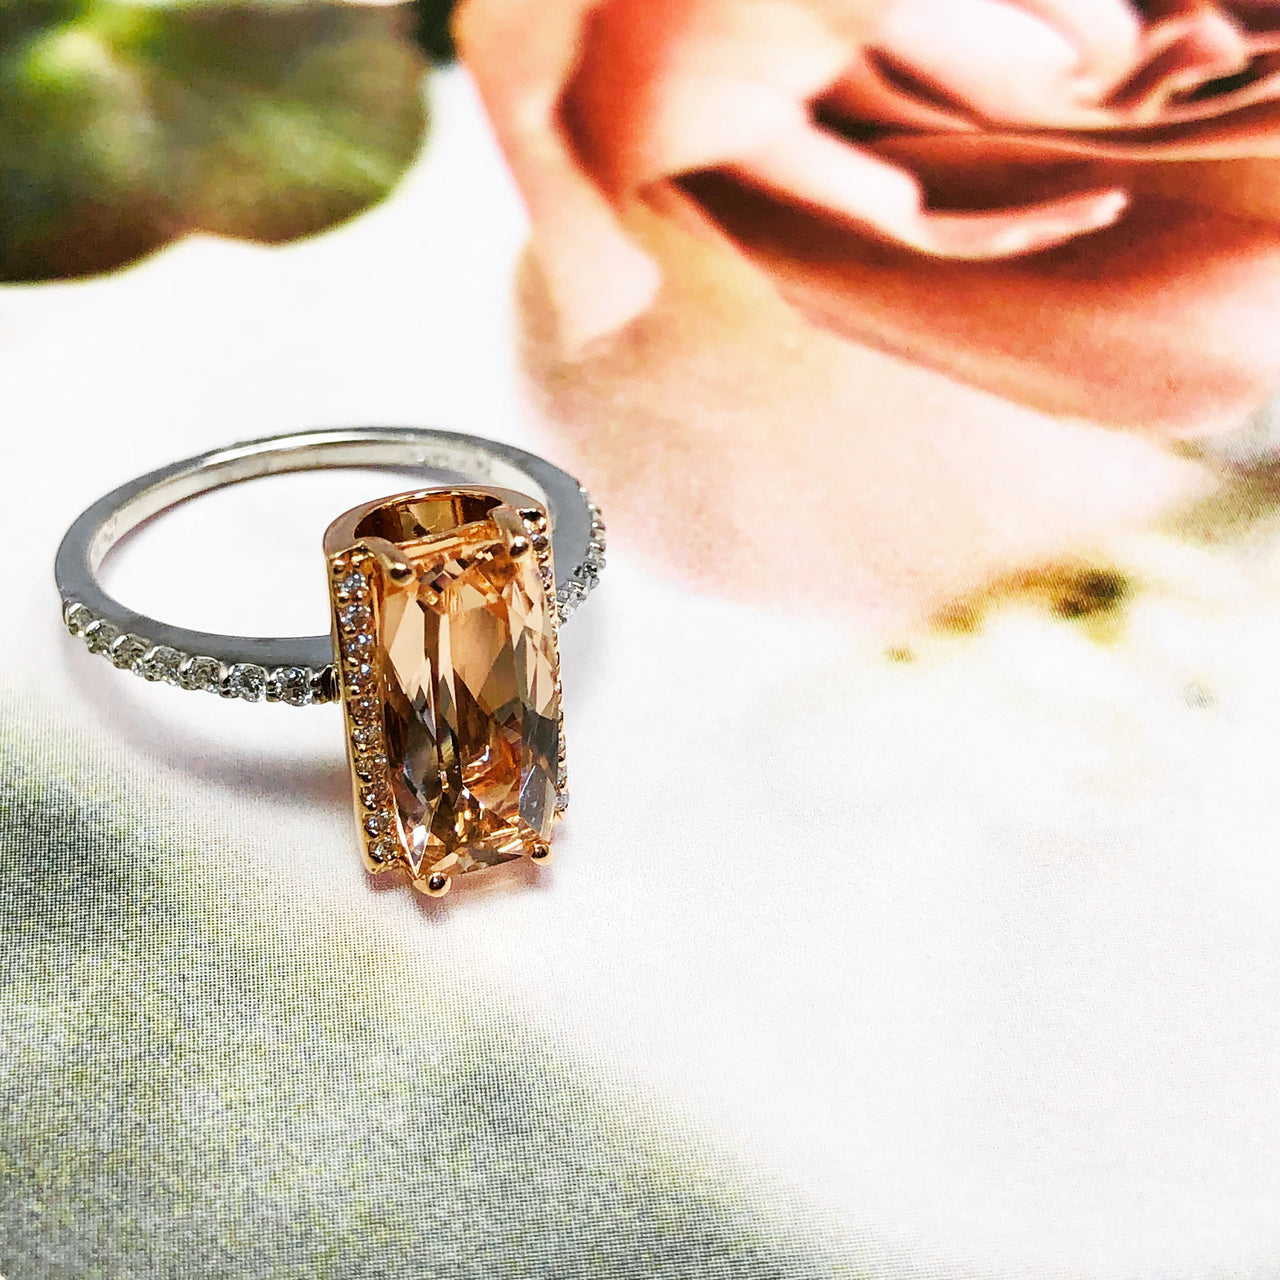 Argentum Silver/14K Rose Gold Morganite and Diamond Ring.